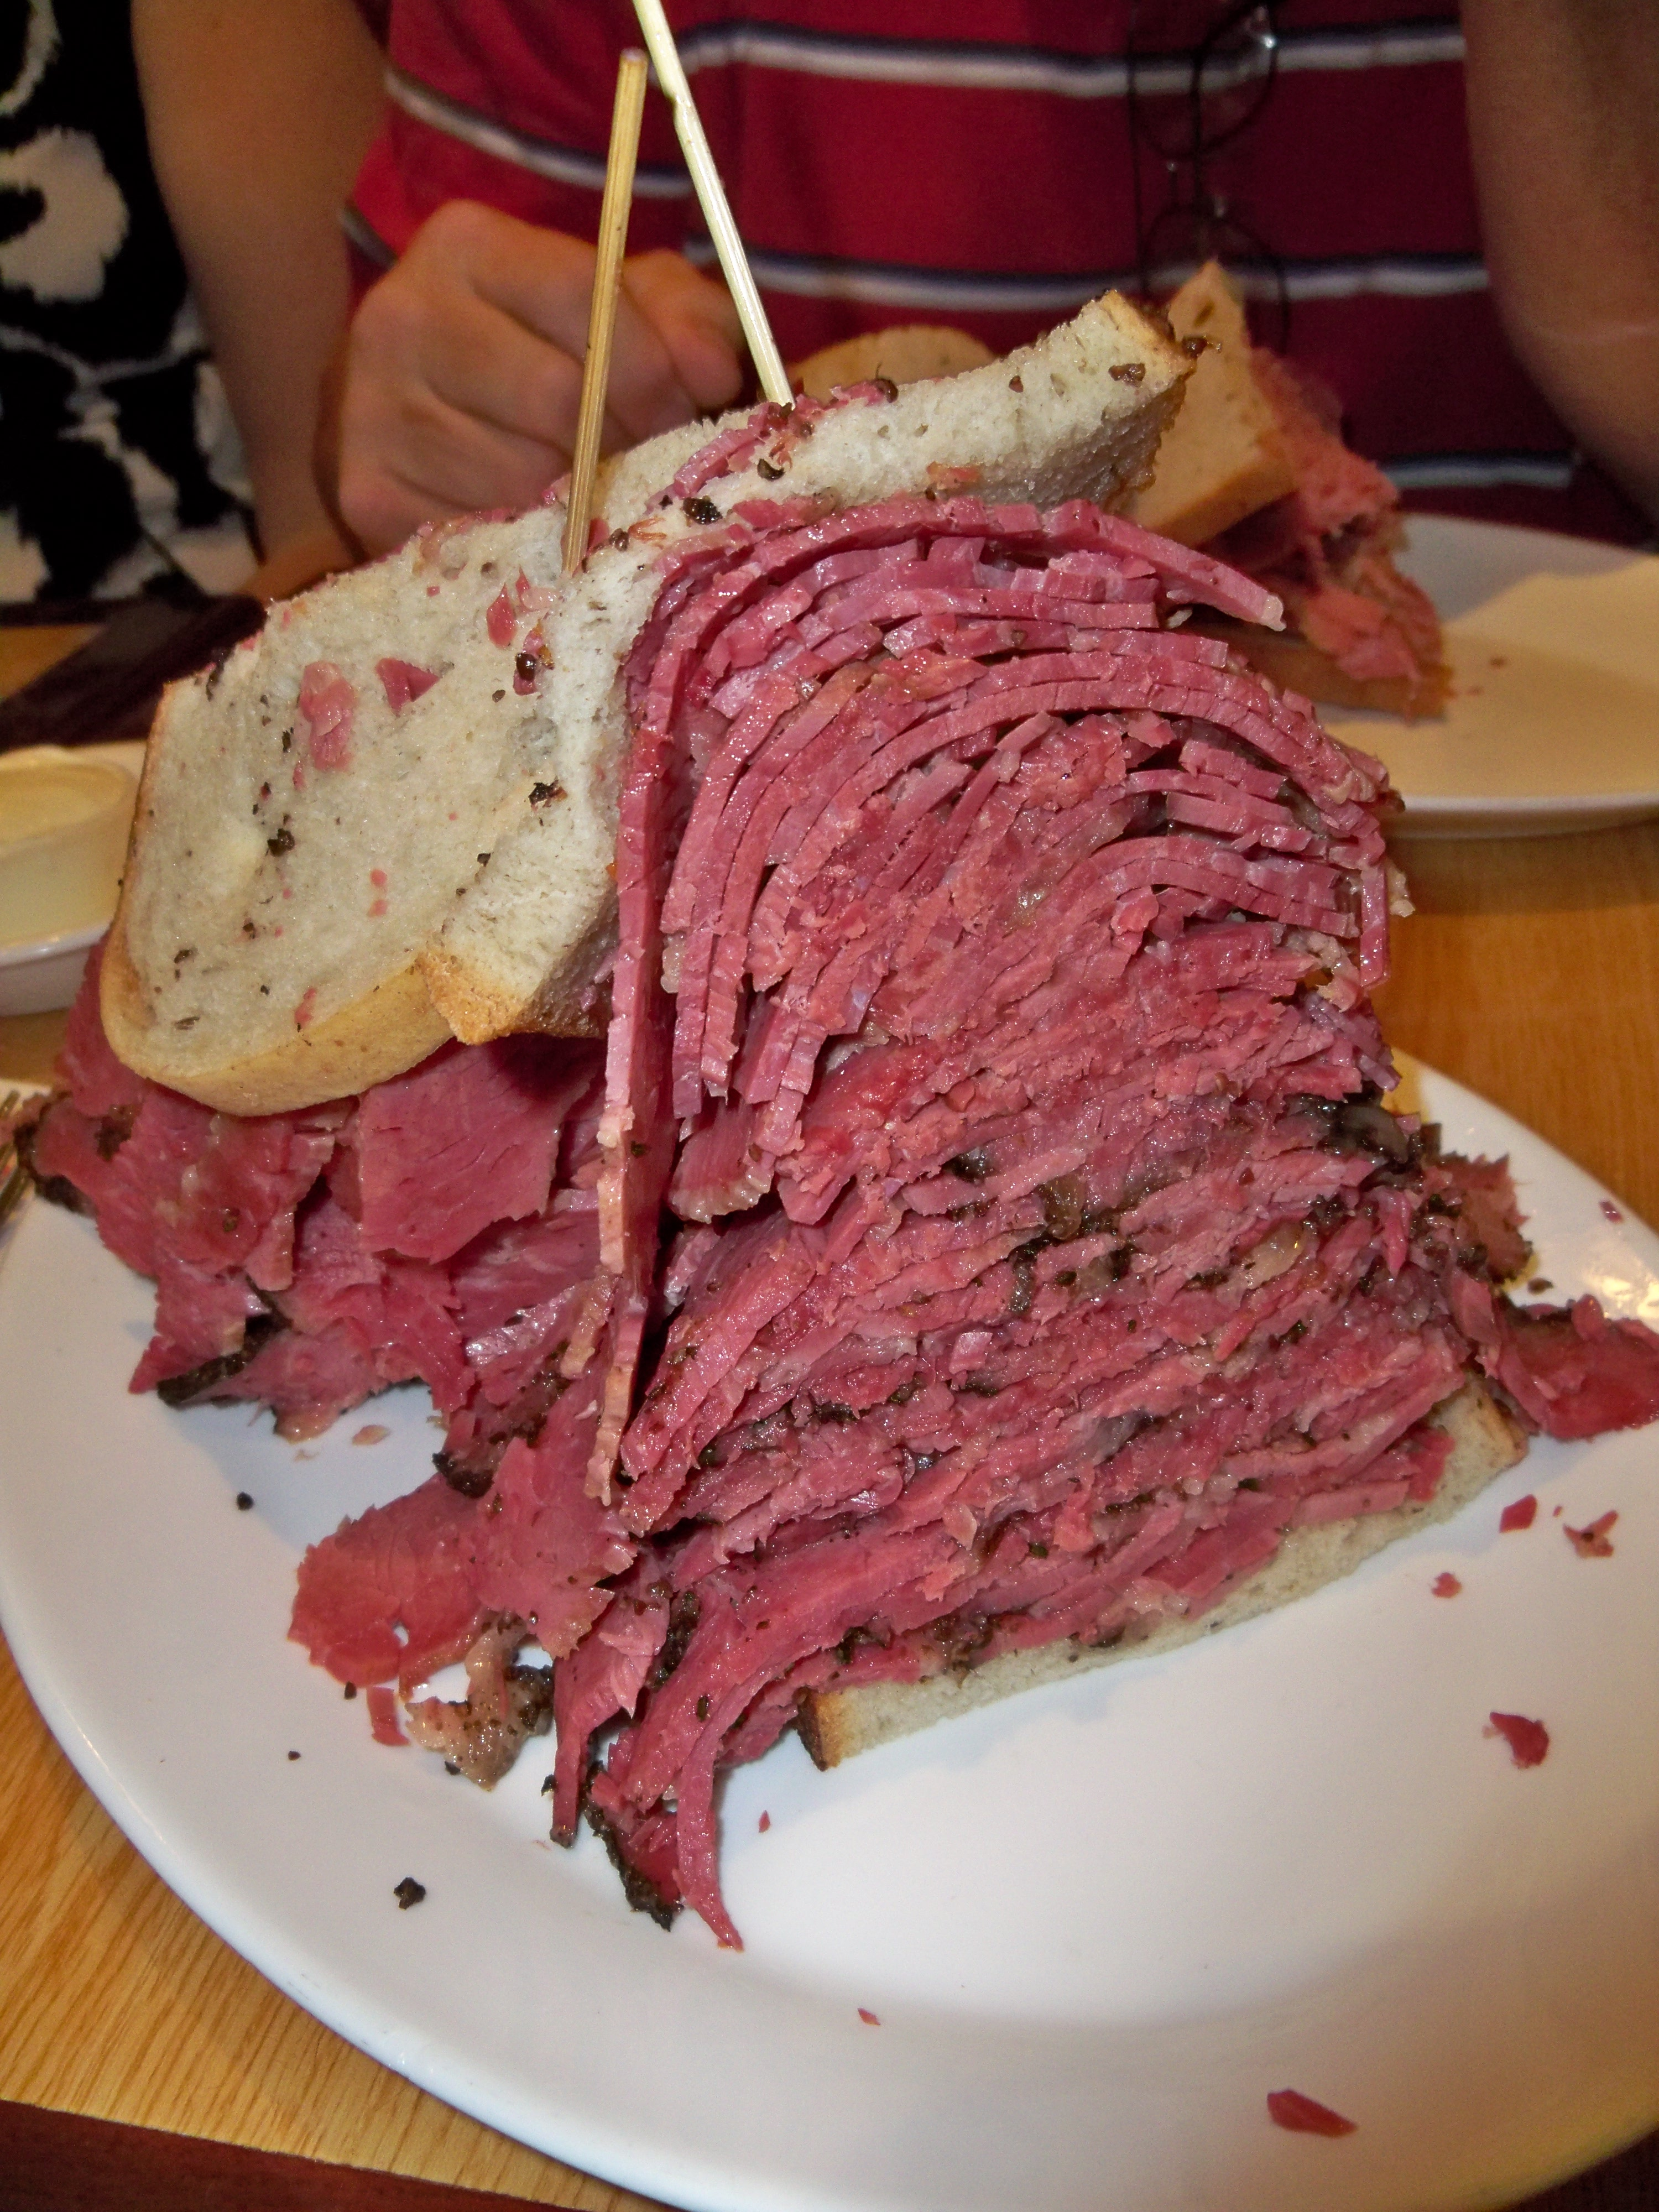 The Half Pastrami Half Corned Beef Sandwich Is A Peppery Beefy Slice Of Heaven That Puts What You Find In Nashville Grocery Stores To Shame